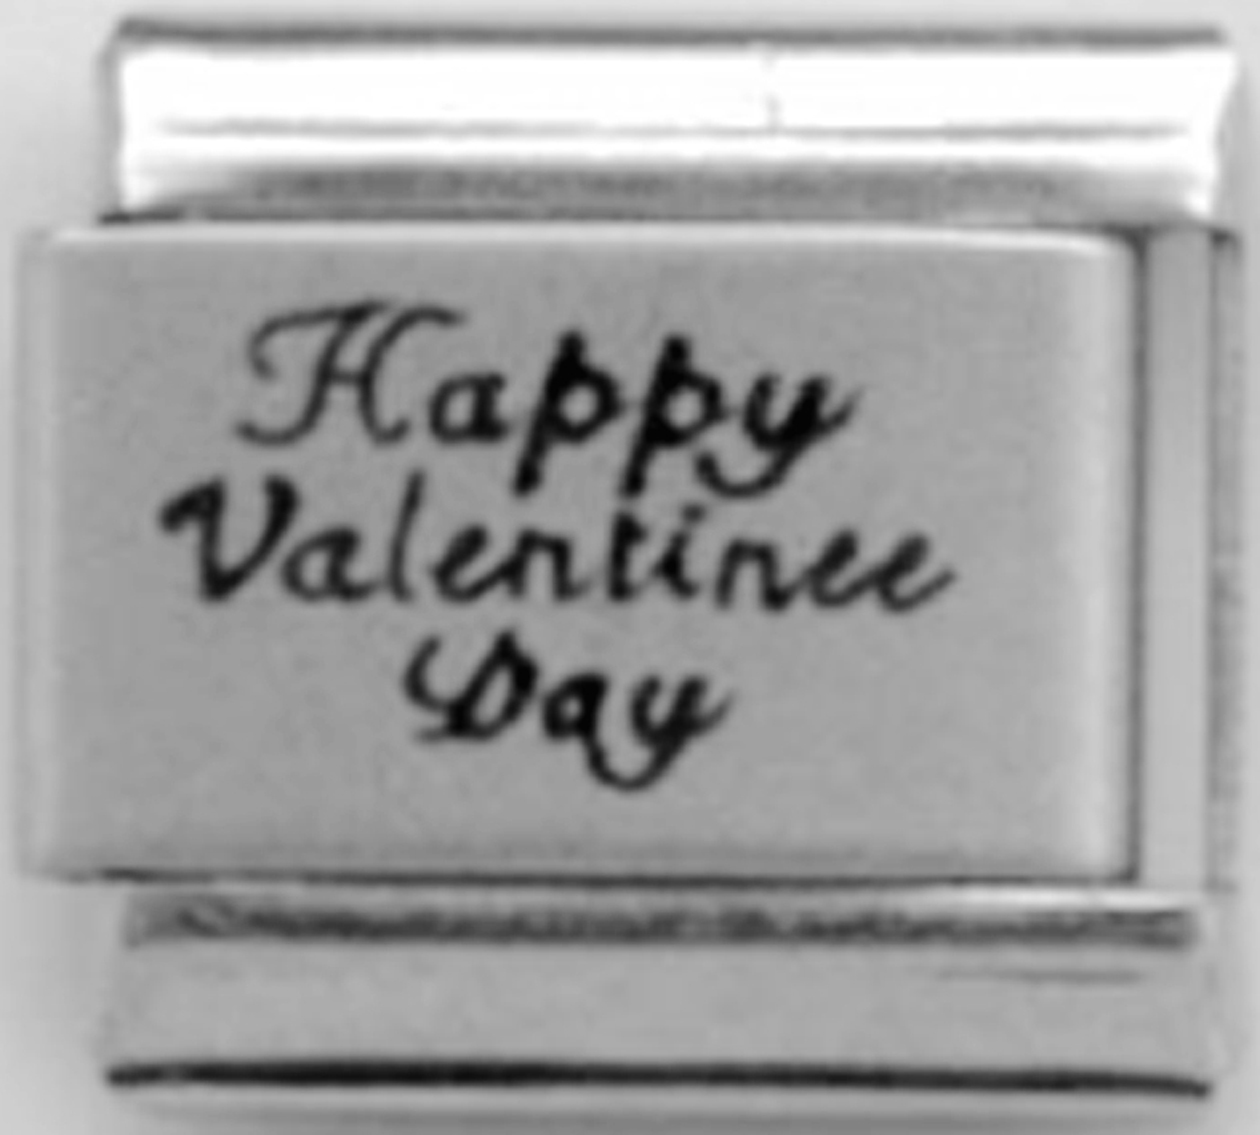 LC008-Happy-Valetines-Day